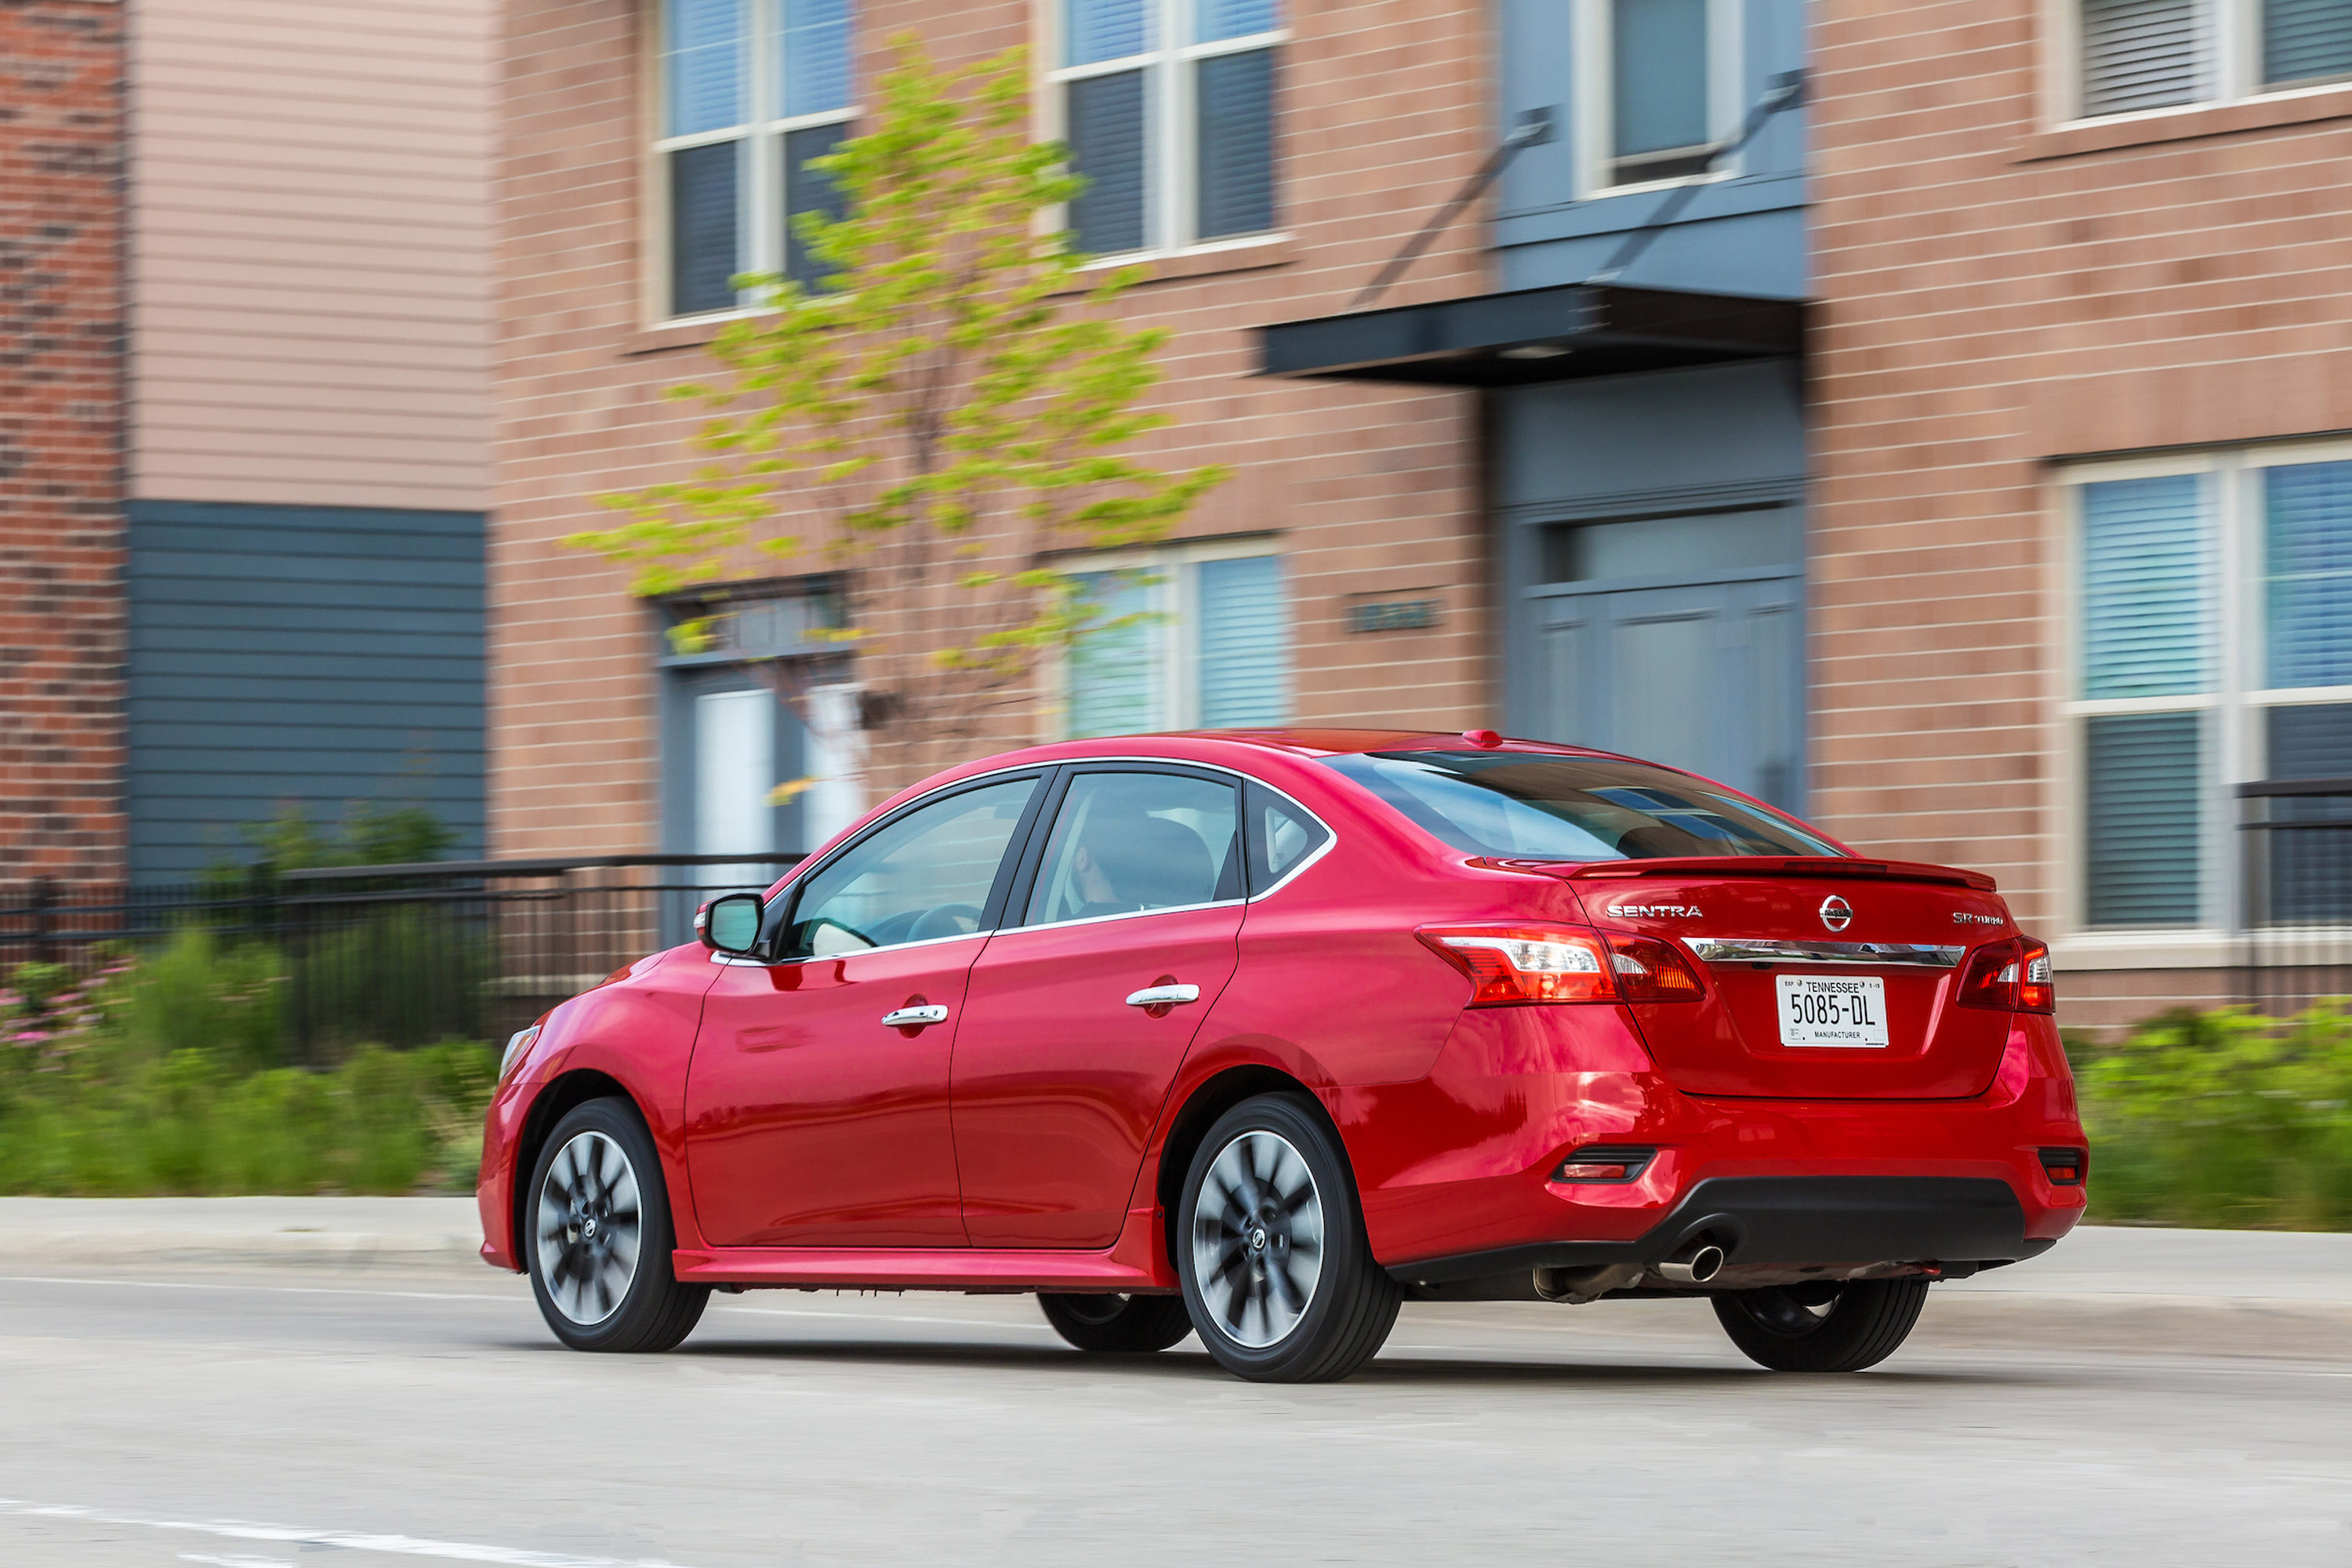 Nissan reveals more details about 2019 Sentra lineup